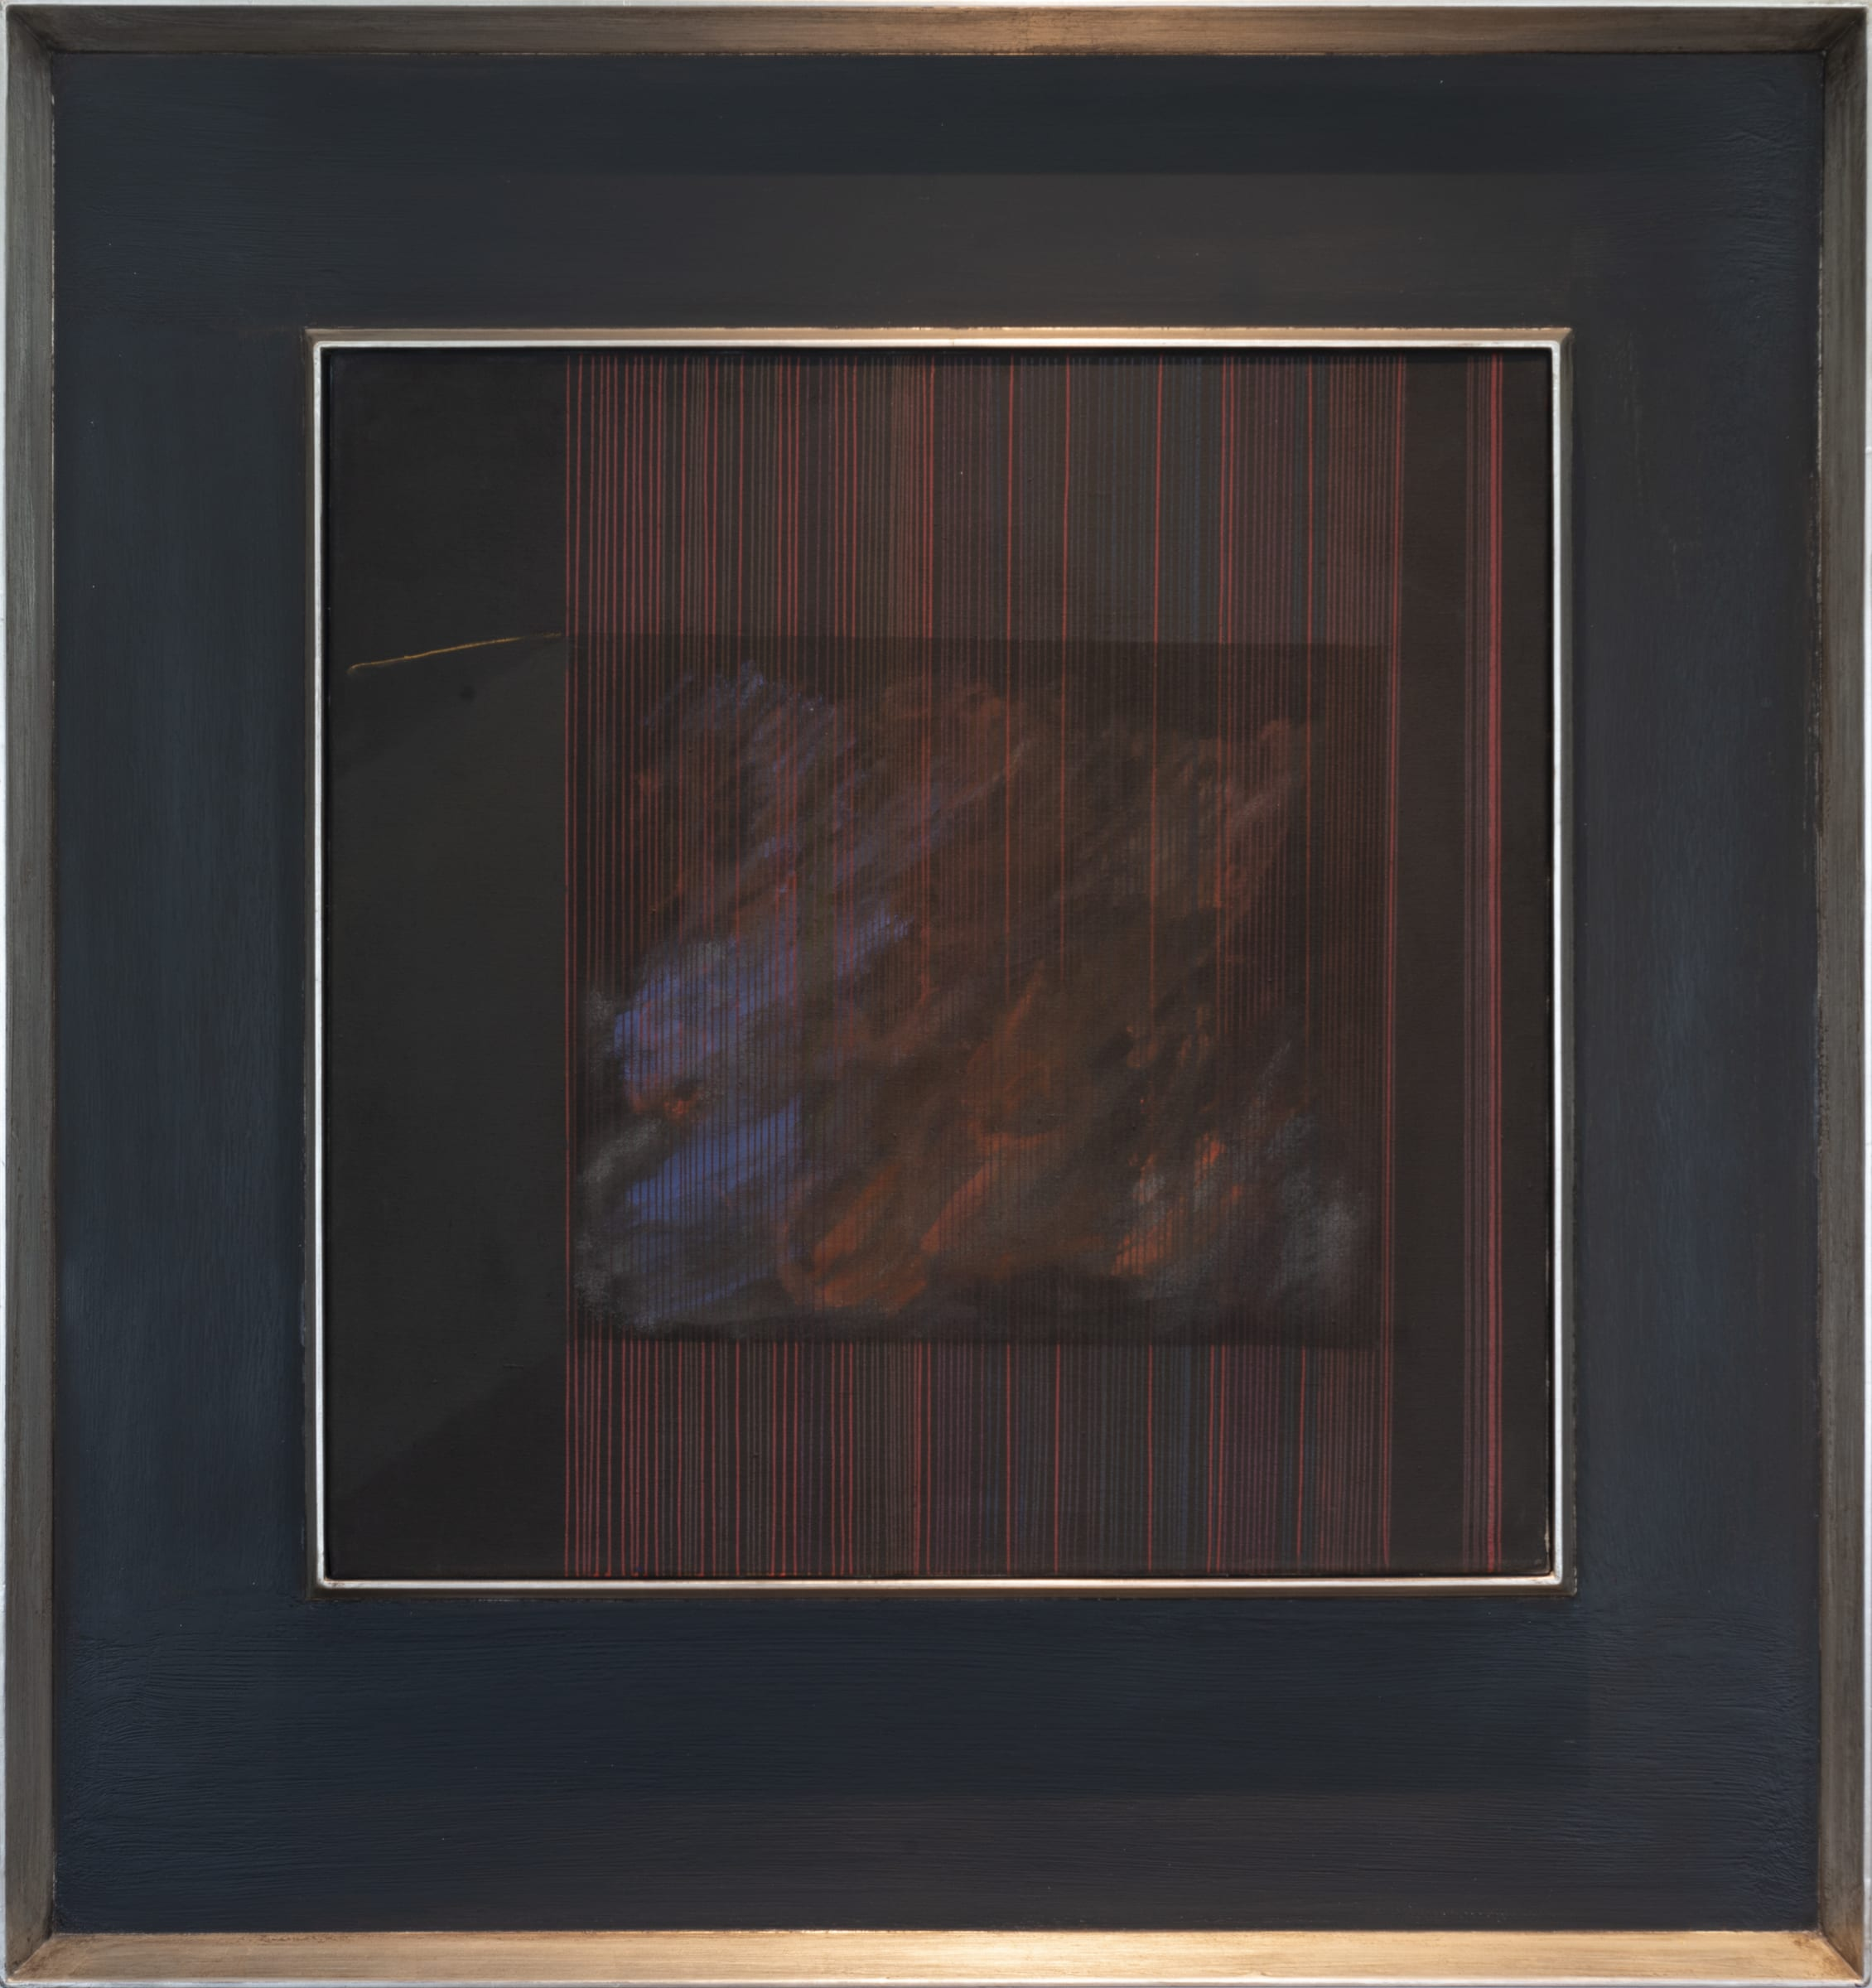 """<span class=""""link fancybox-details-link""""><a href=""""/exhibitions/114/works/artworks8395/"""">View Detail Page</a></span><div class=""""signed_and_dated"""">Signed and titled on reverse Requiem Hotere Port Chalmers 74</div> <div class=""""medium"""">Oil, cellulose lacquer and gold paint on cotton canvas</div> <div class=""""dimensions"""">815mm x 815mm</div>"""